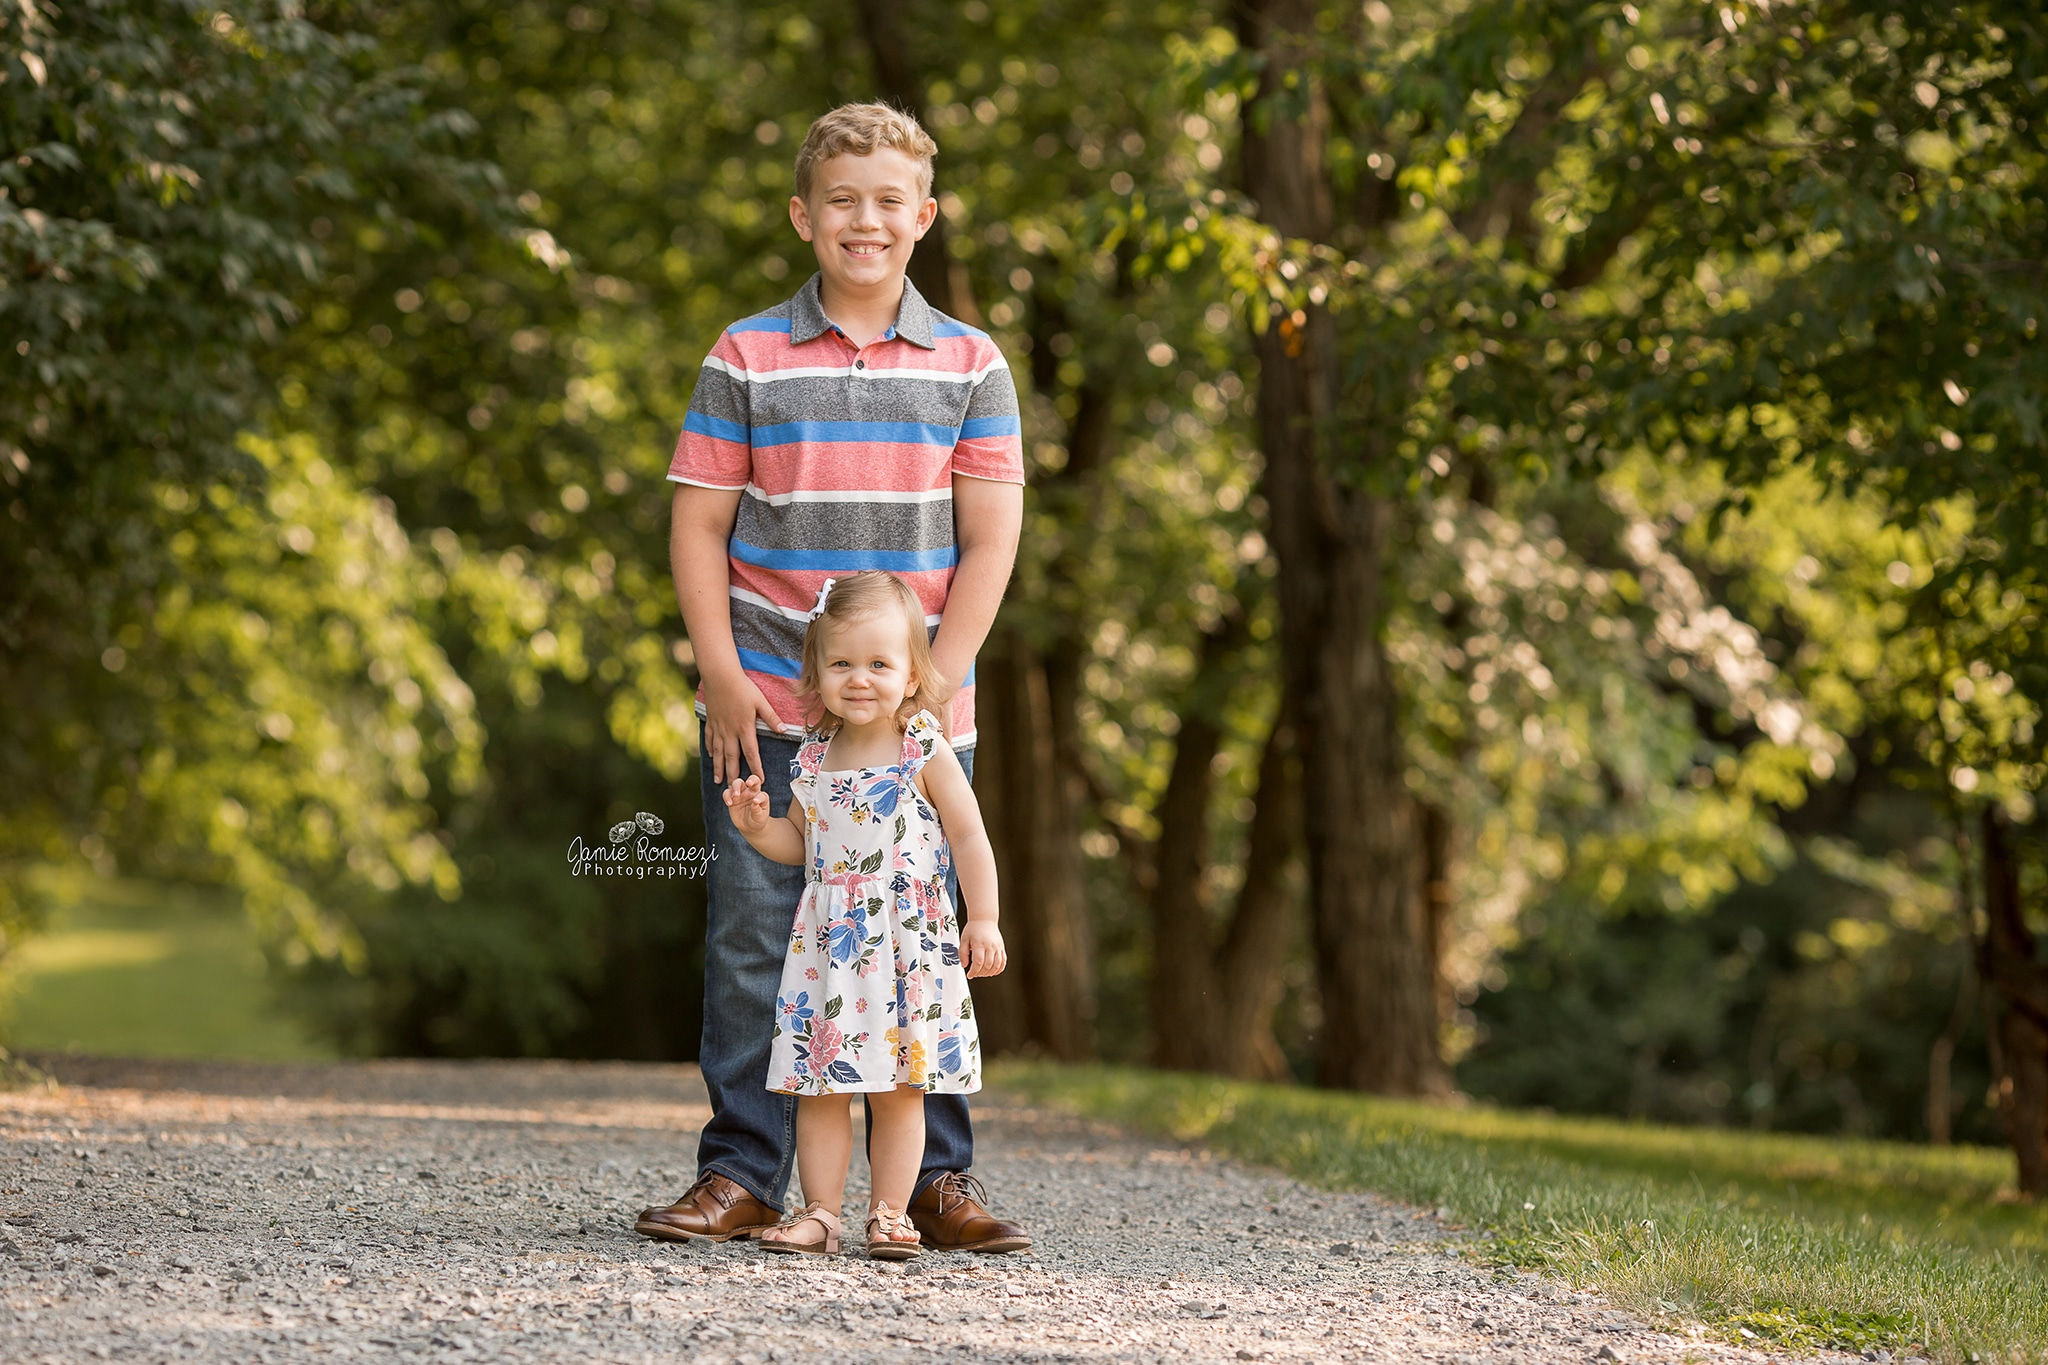 Spring portrait of big brother and little sister. Brother is holding little sister's shoulders on a gravel trail in front of green, leafy trees.